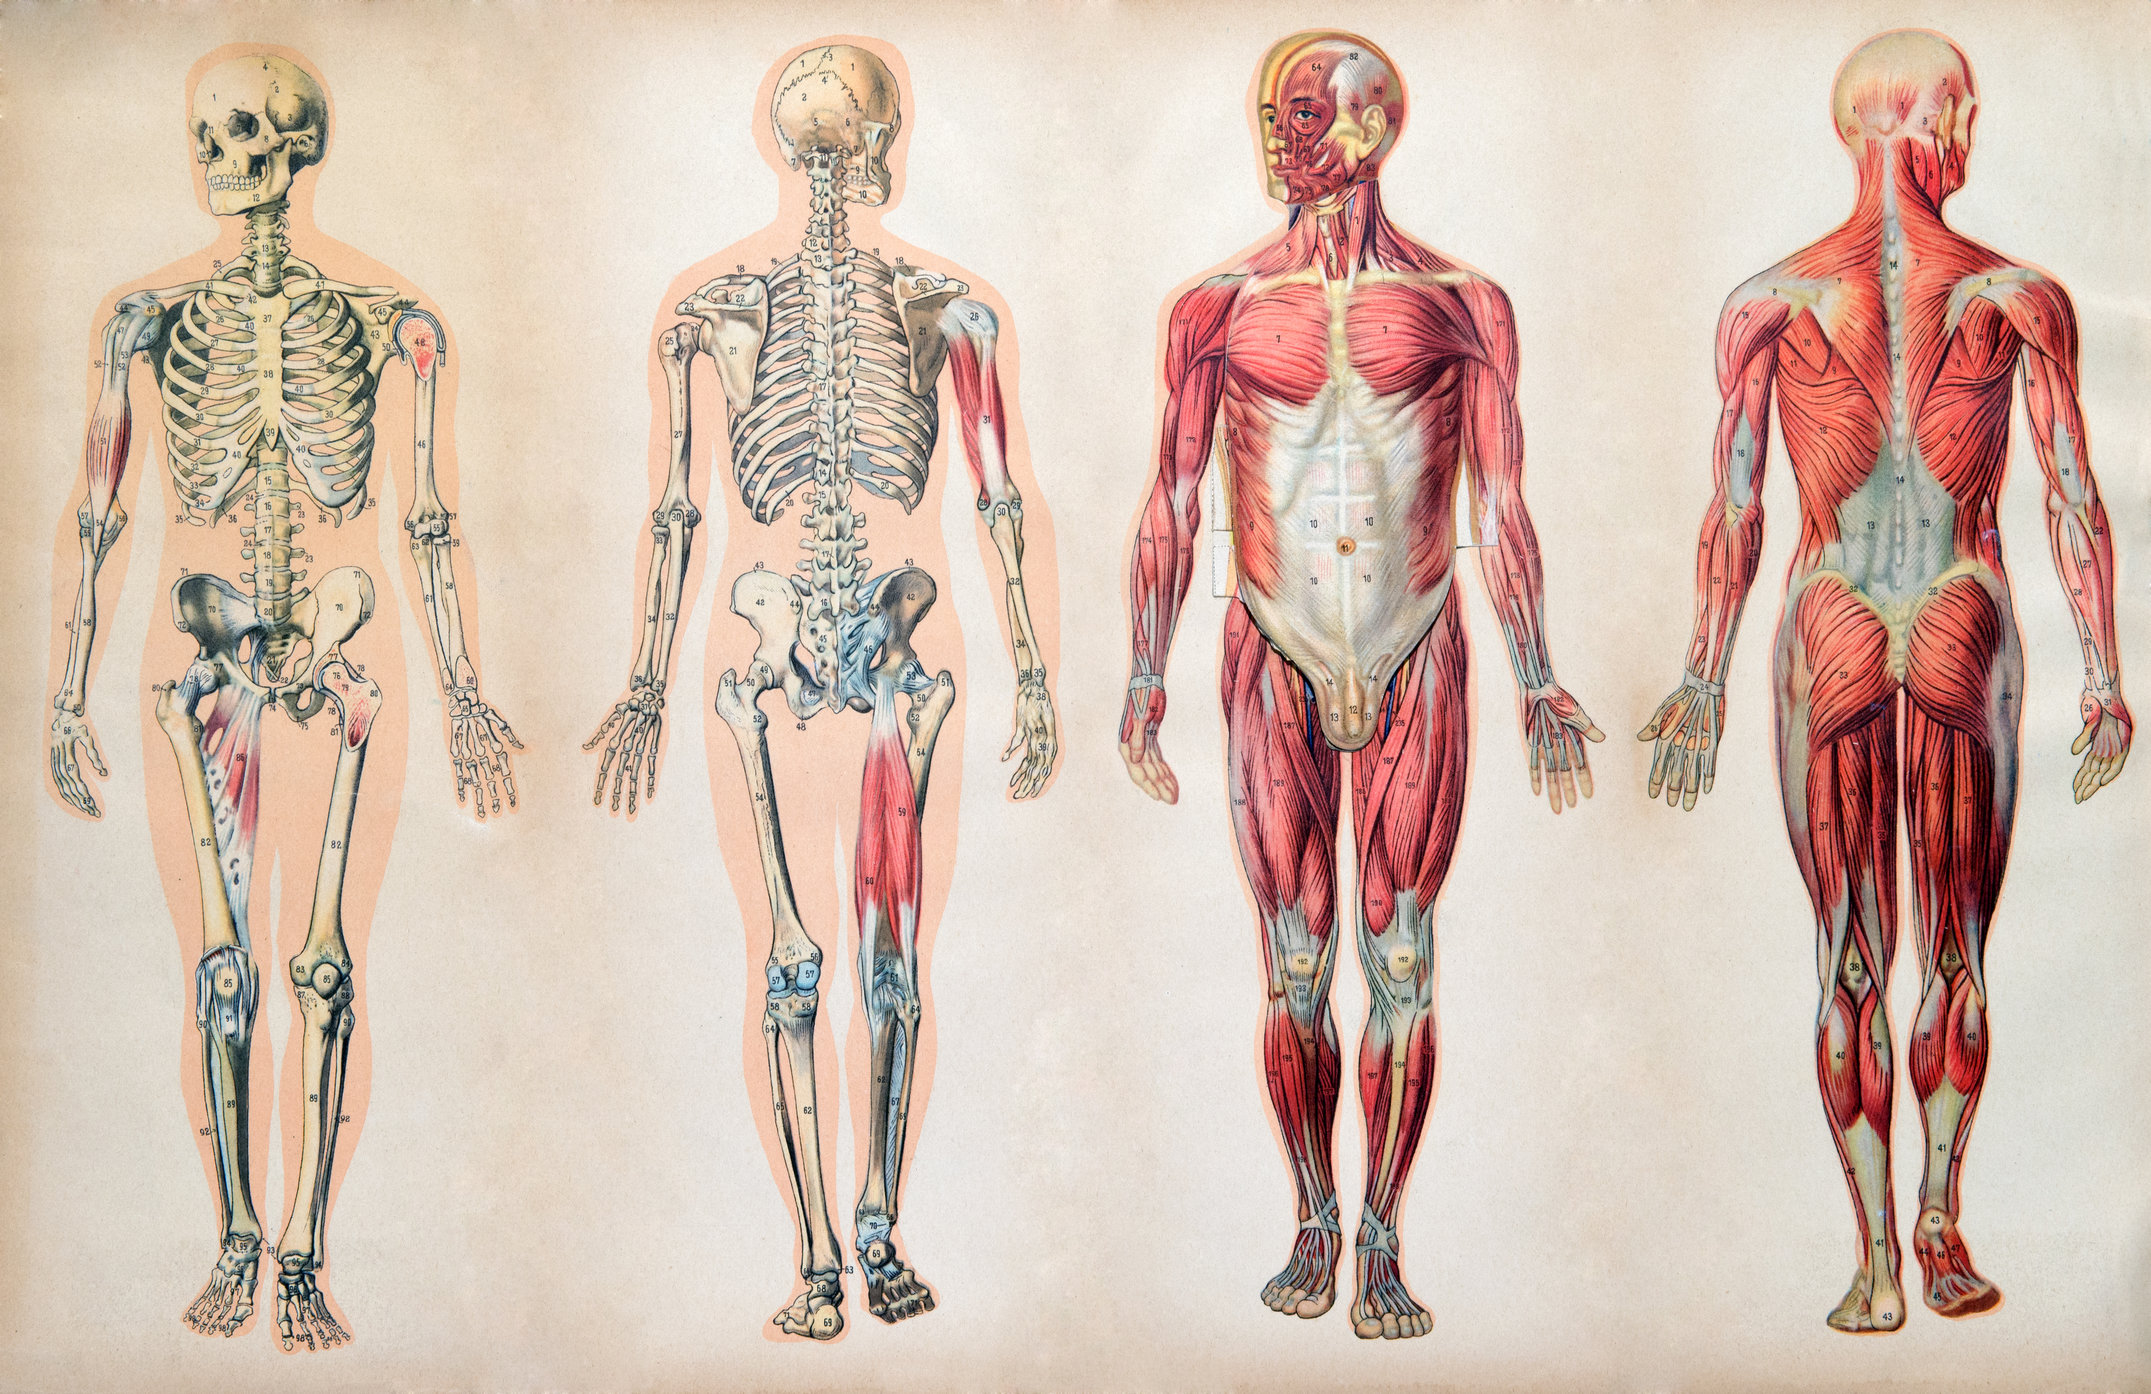 Publics Poor Knowledge Of Anatomy May Hamper Healthcare